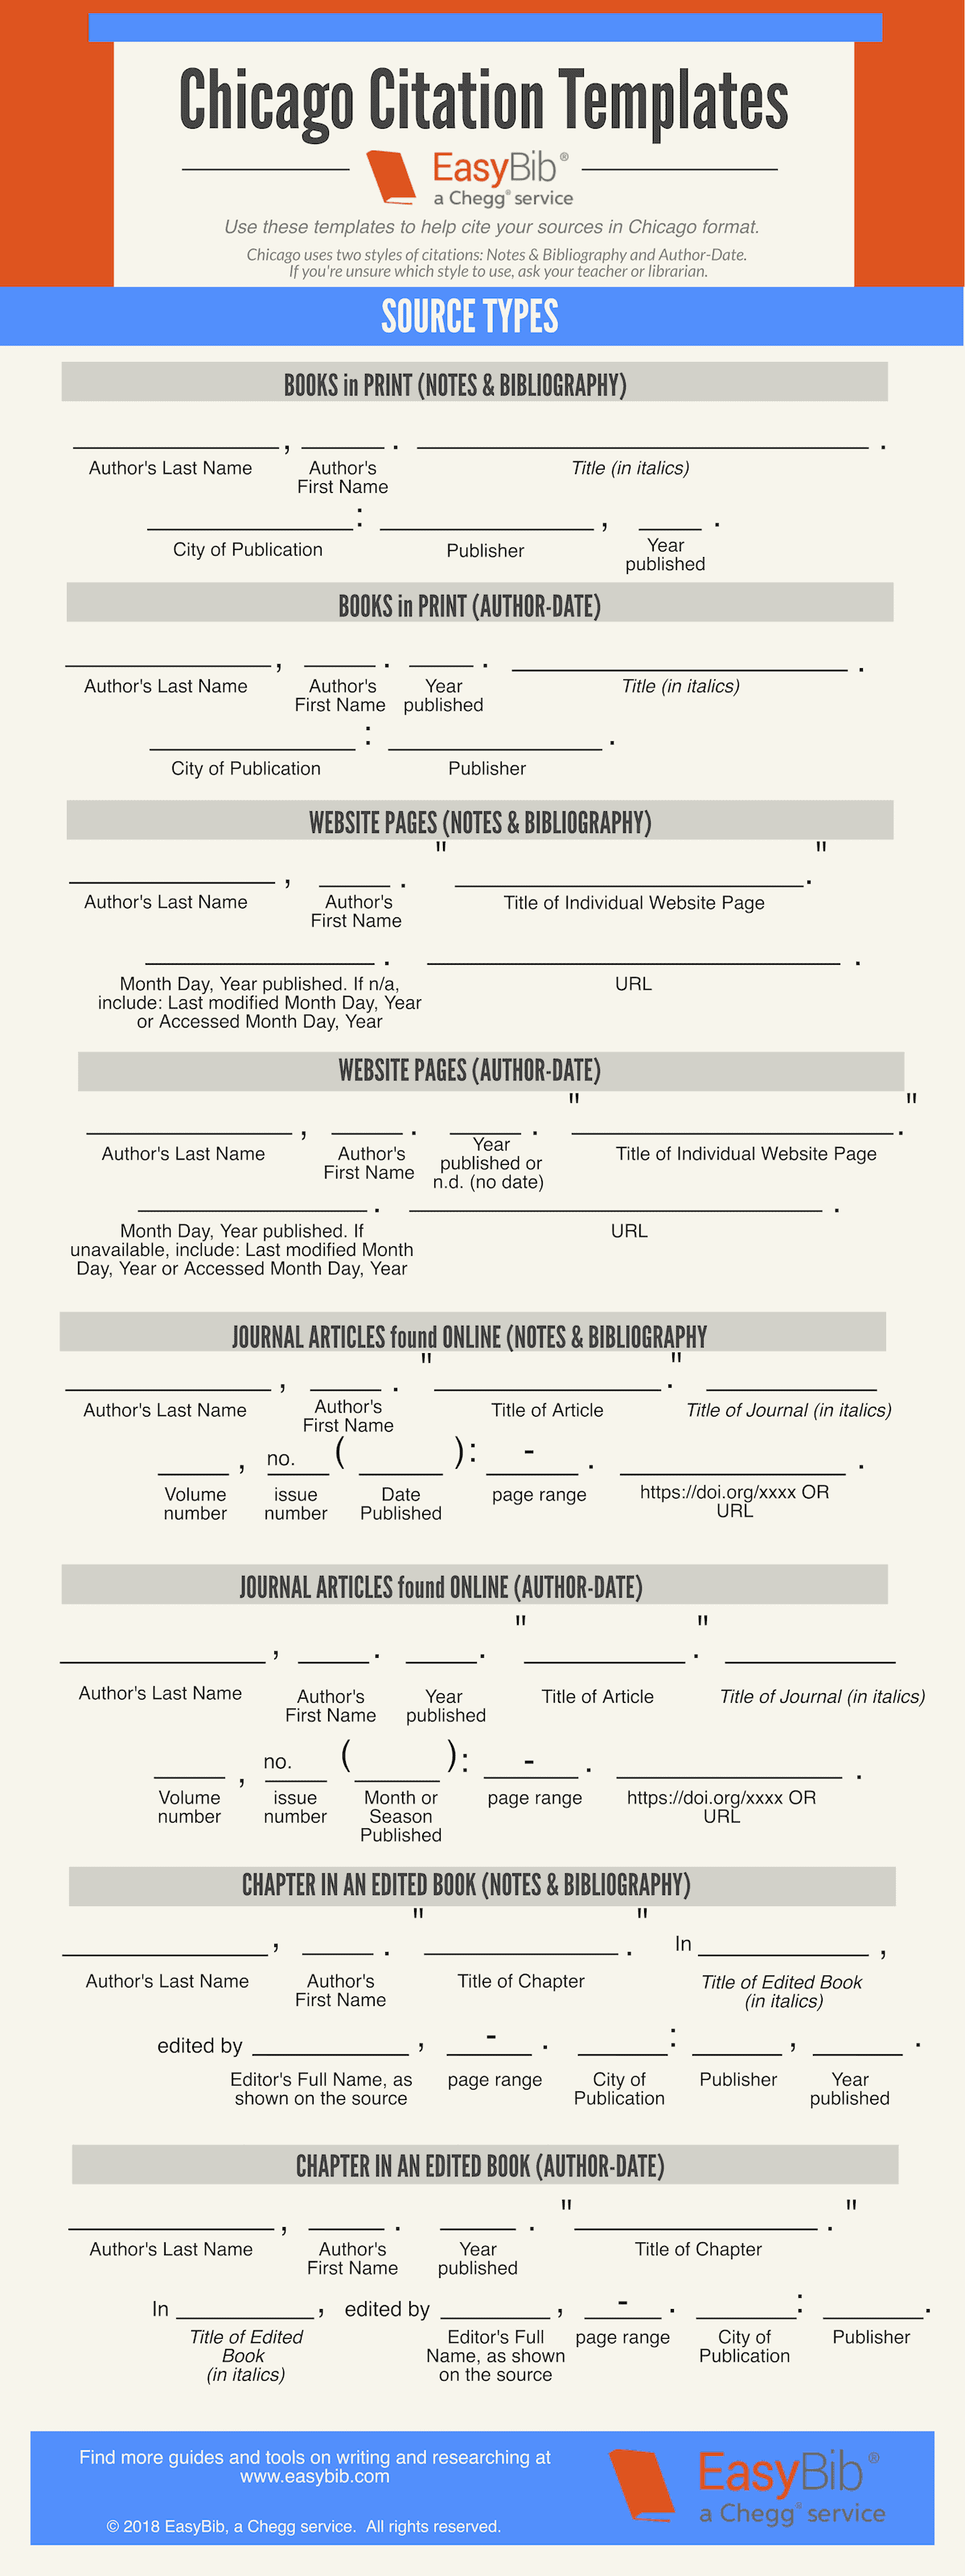 Infographic of Chicago citation templates